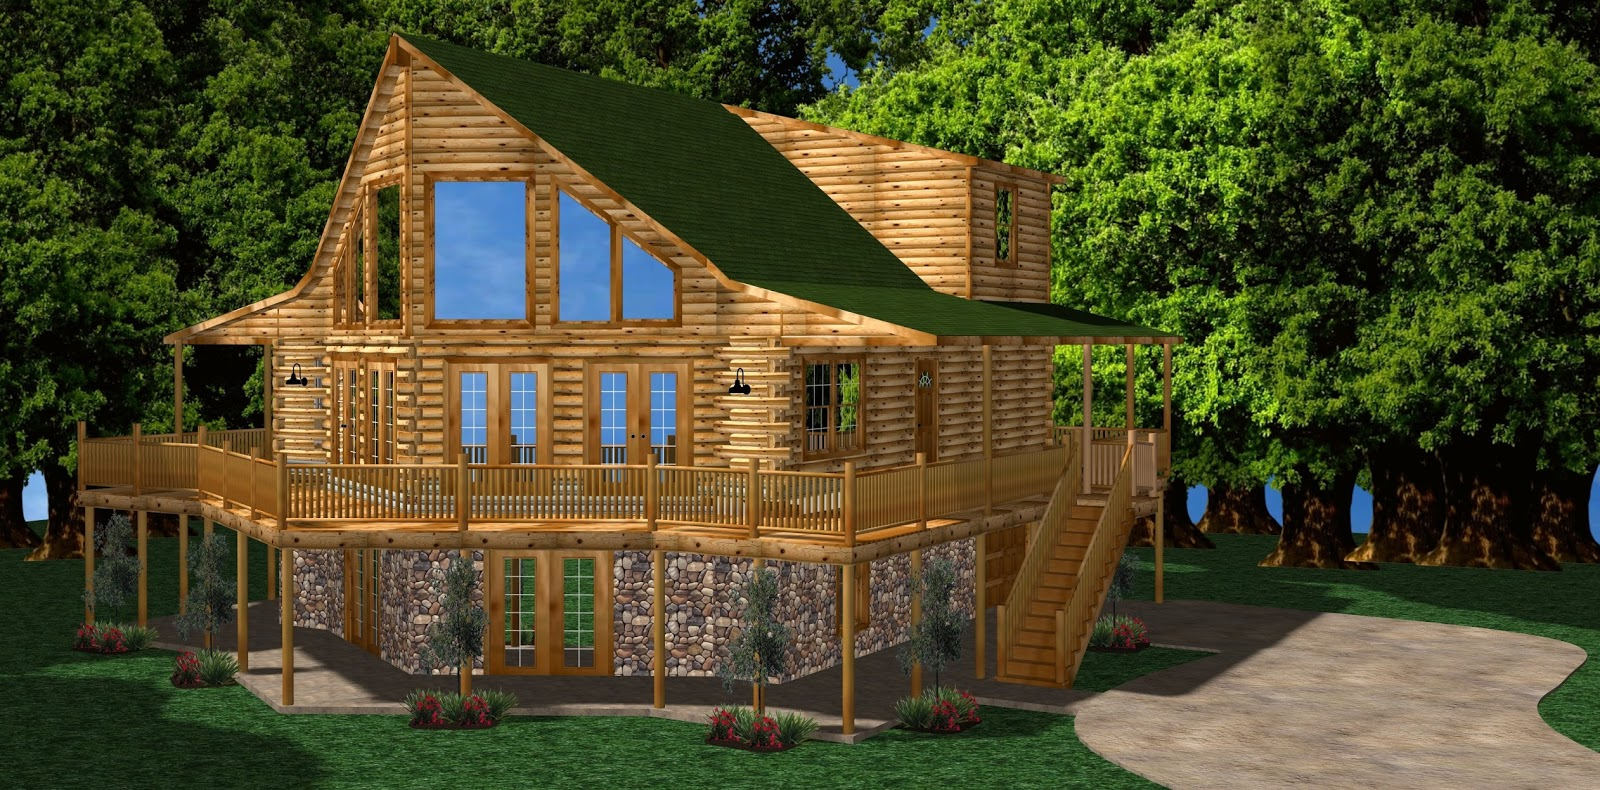 Tar river log homes tar river log homes tar river log for 2 story log cabin kits